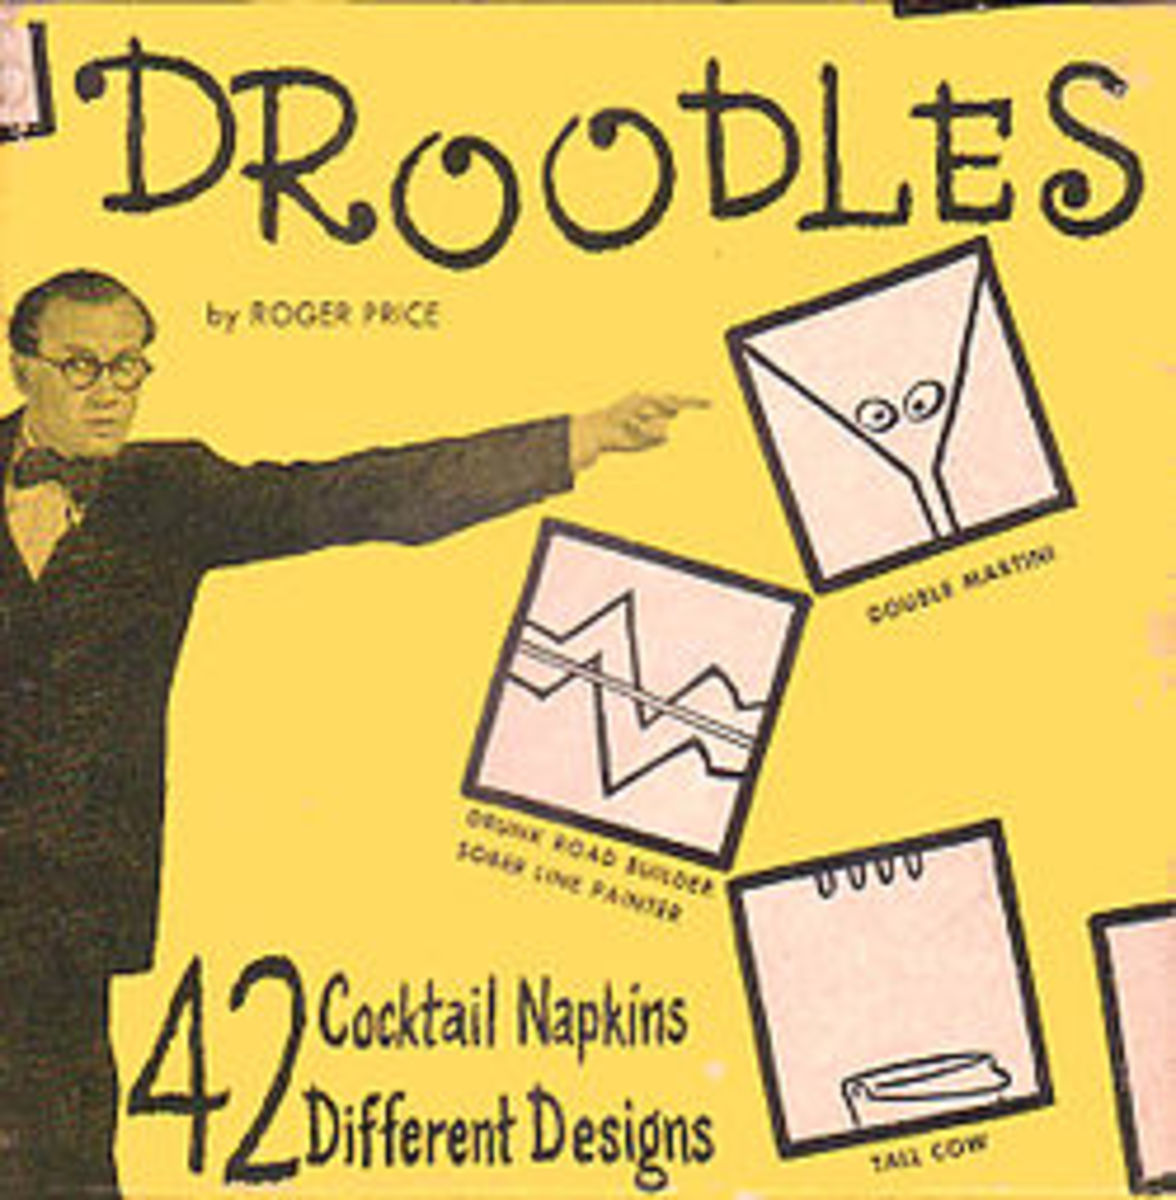 The Droodle Creativity Test